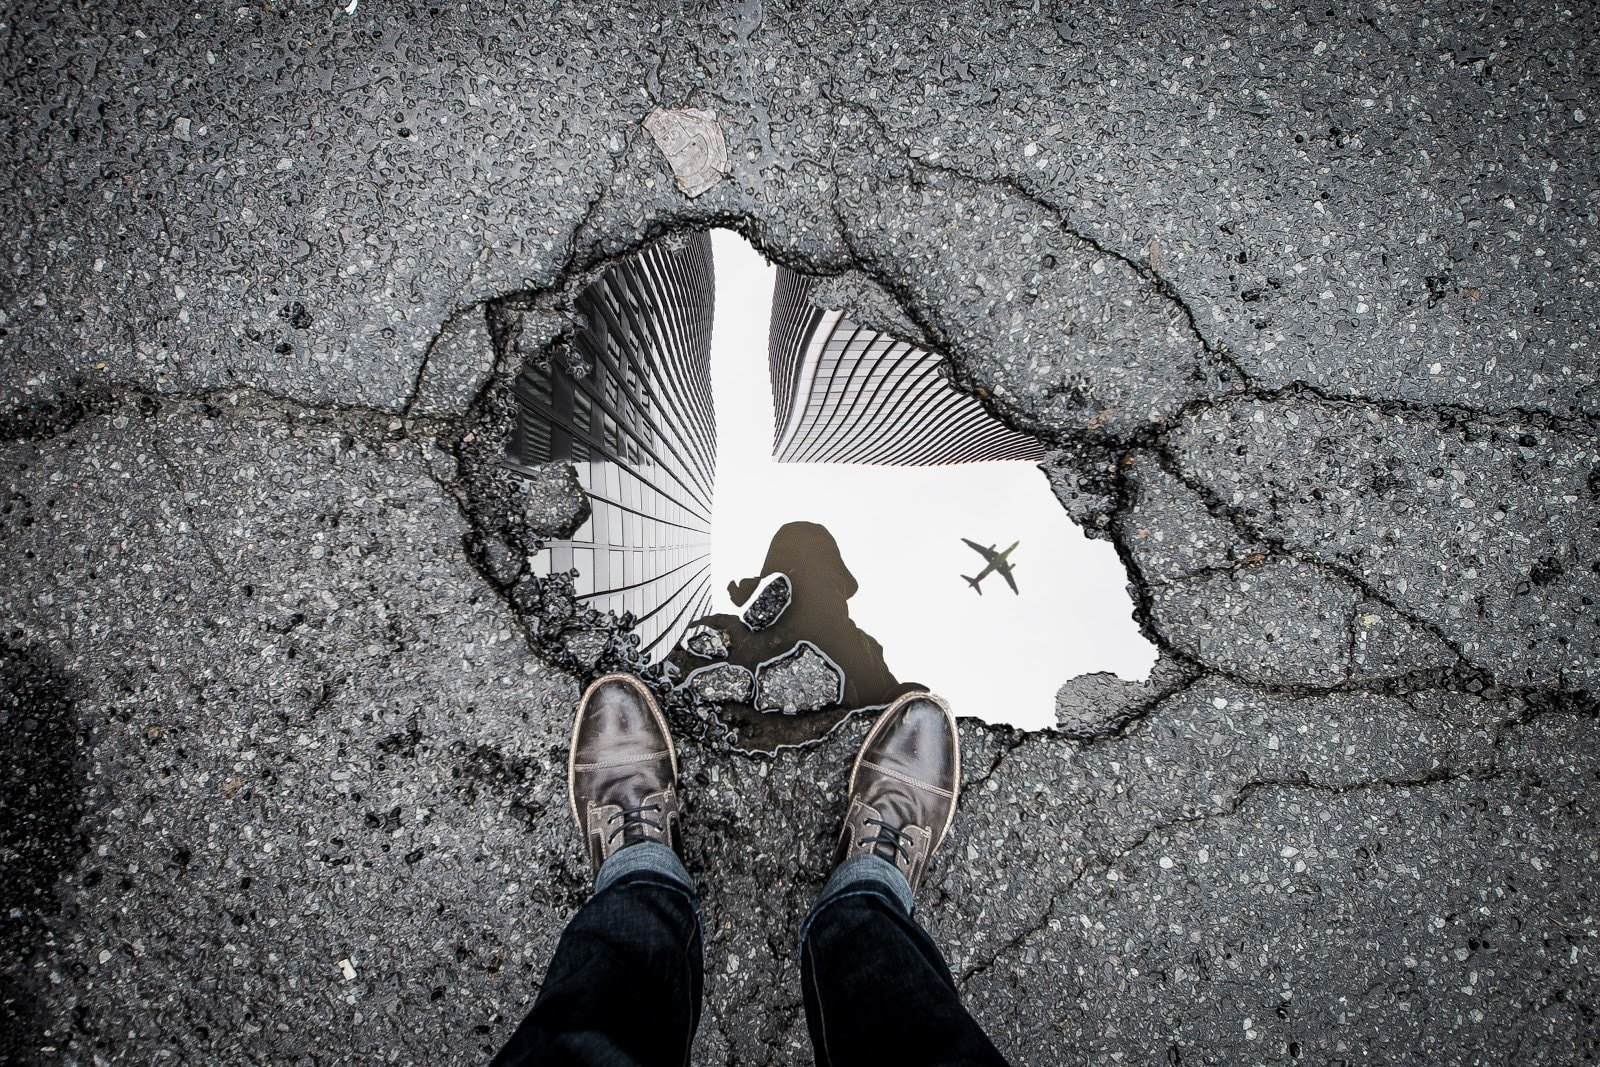 21 creative self portrait techniques that will inspire you to ...